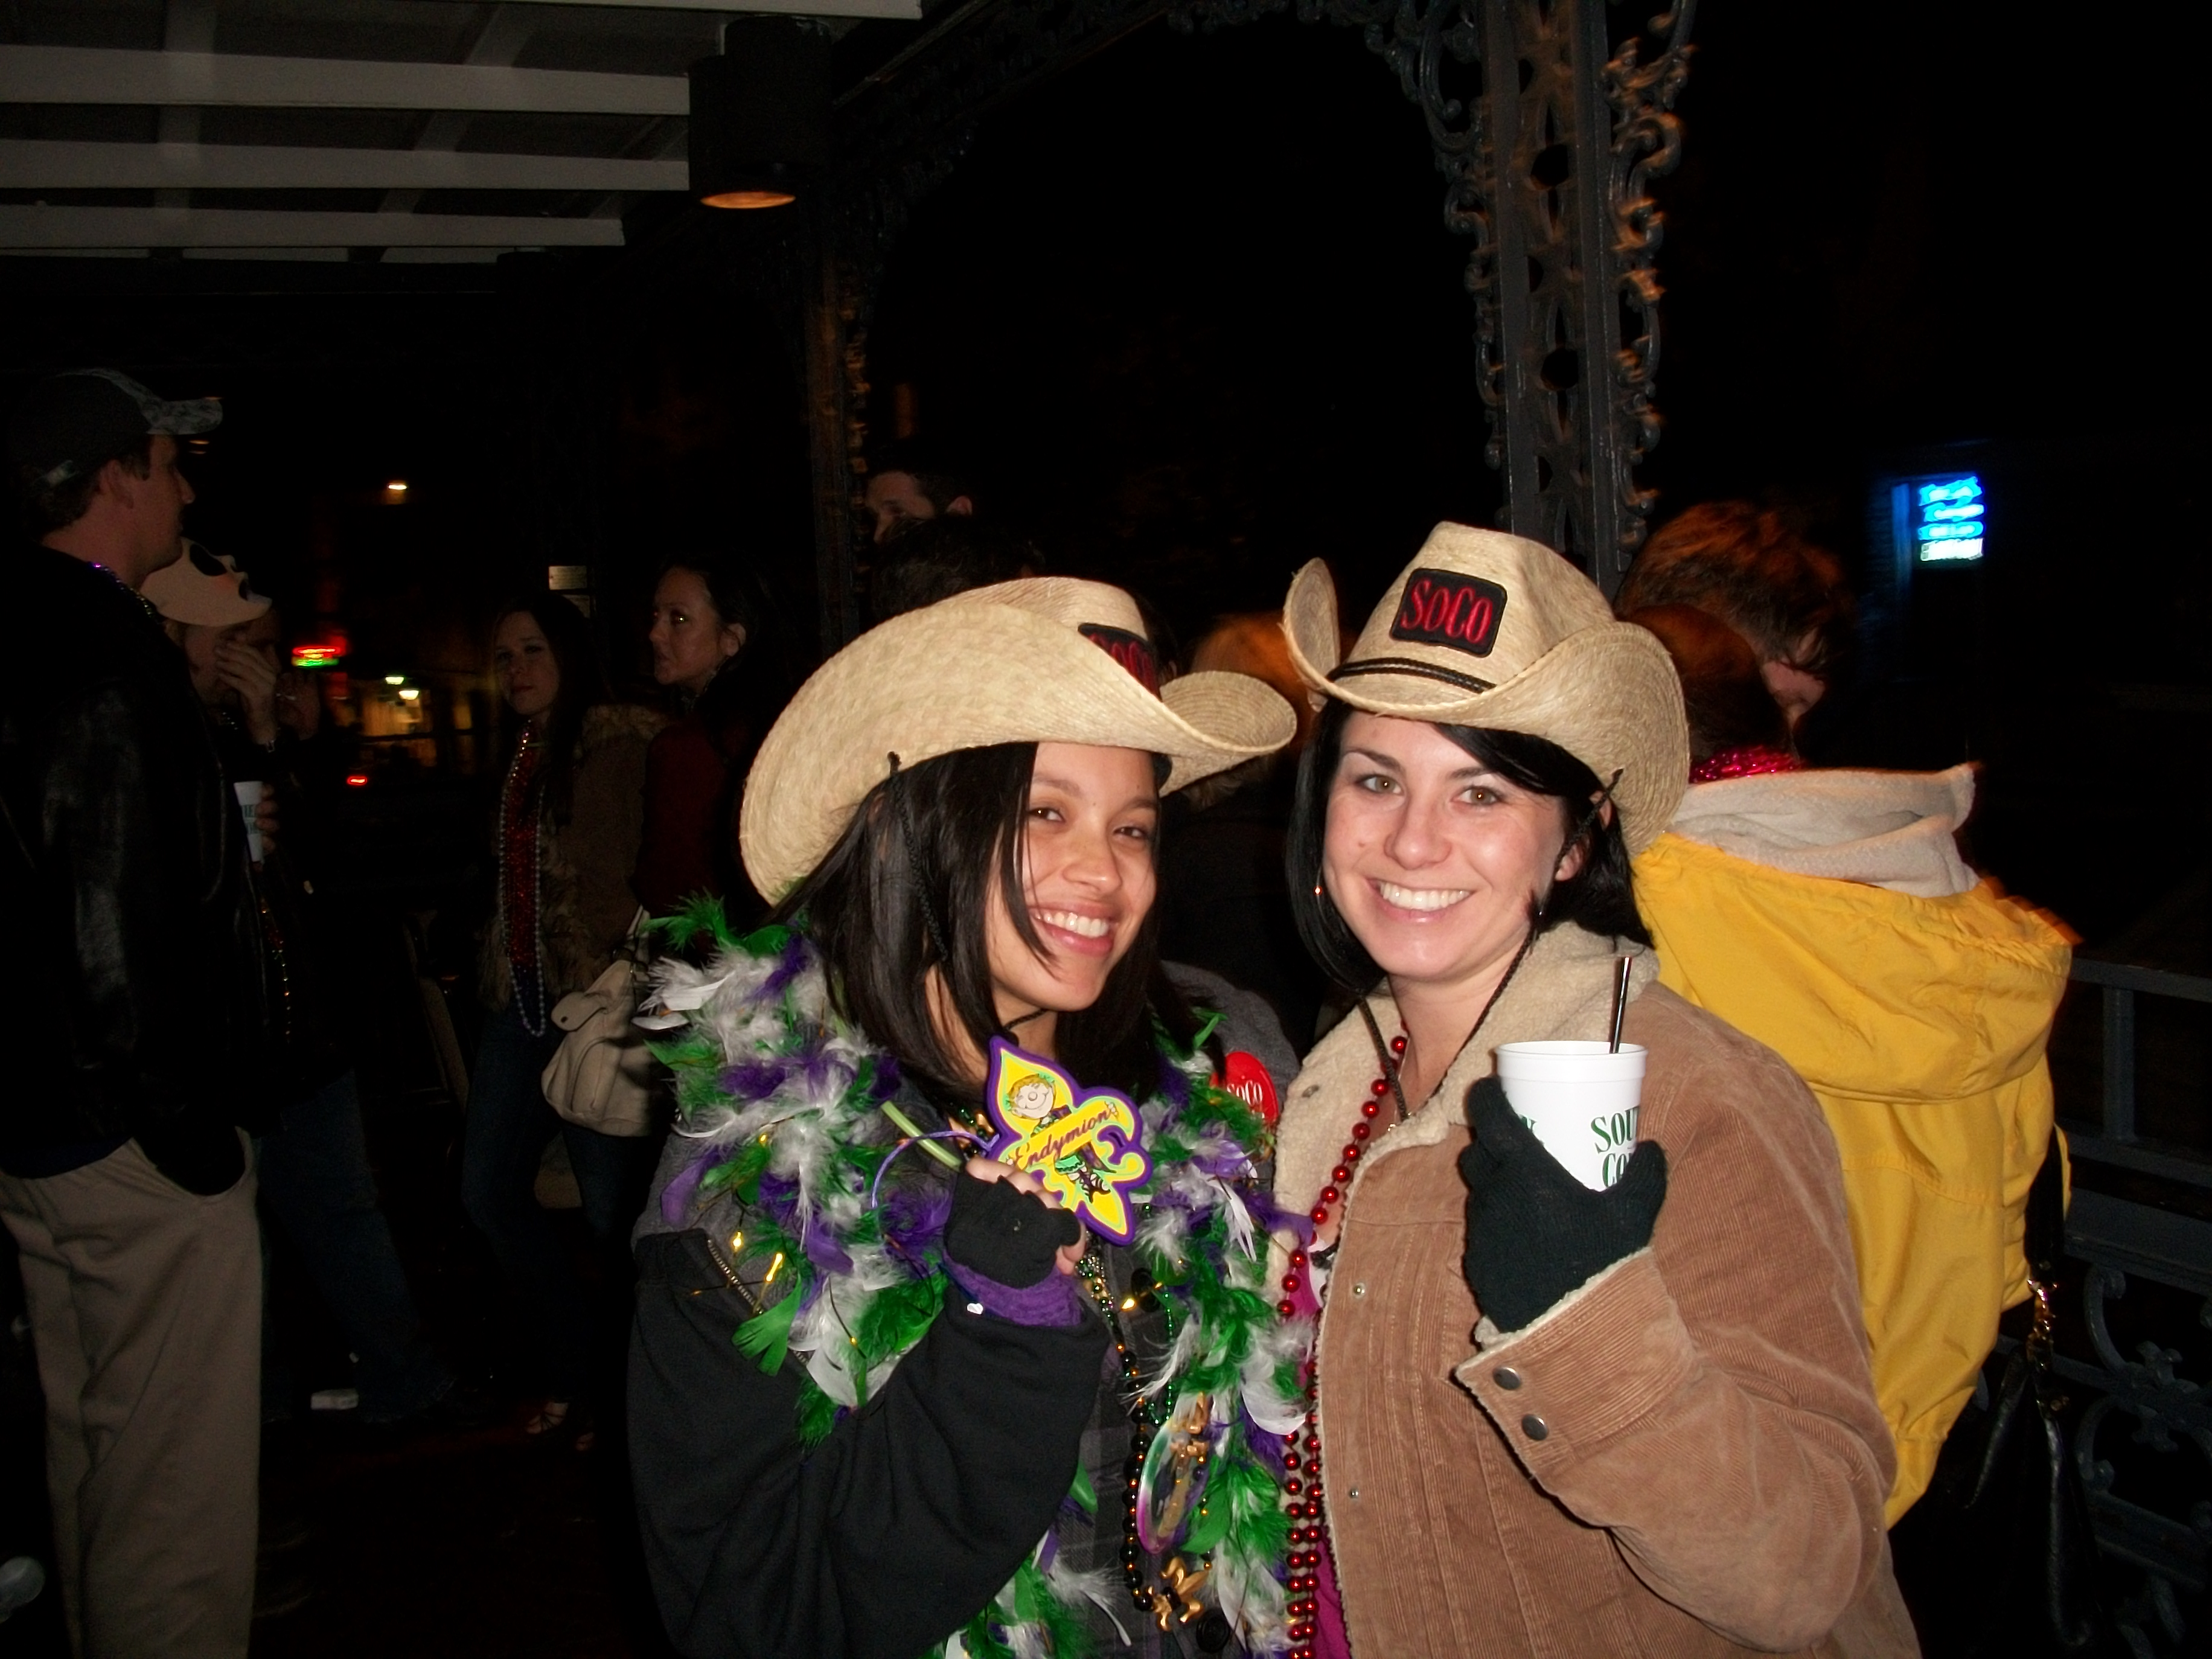 I think this girl's name was Zeta or something. During Mardi Gras a friend of a friend of a friend becomes your friend.